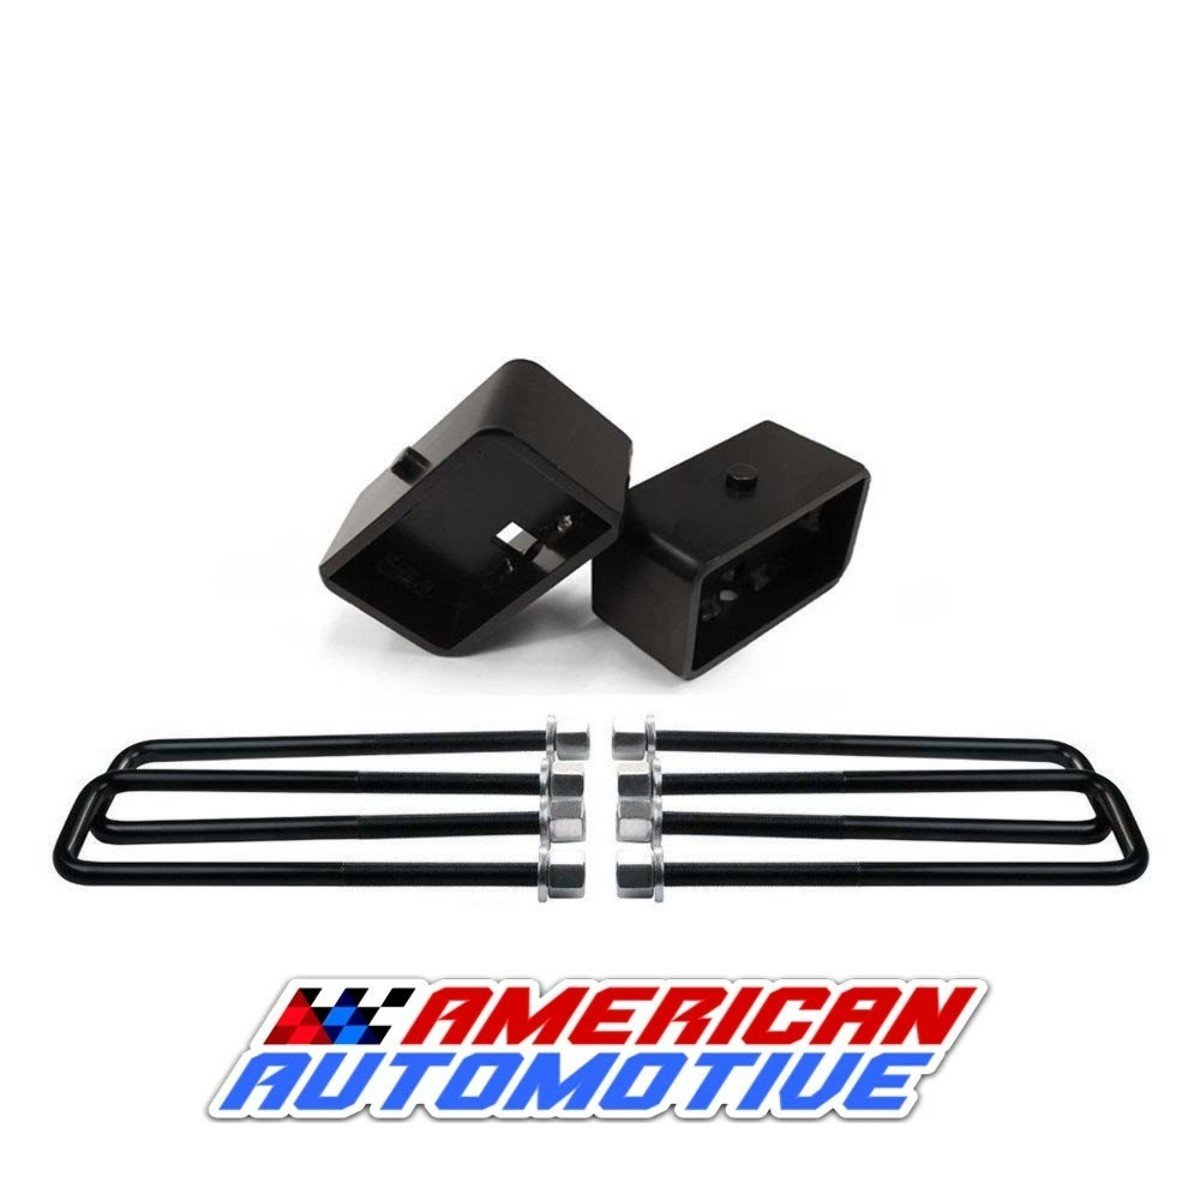 American Automotive 3' Rear Suspension Lift Steel Blocks + Extra Long 12' Square Leaf Spring Axle U Bolts